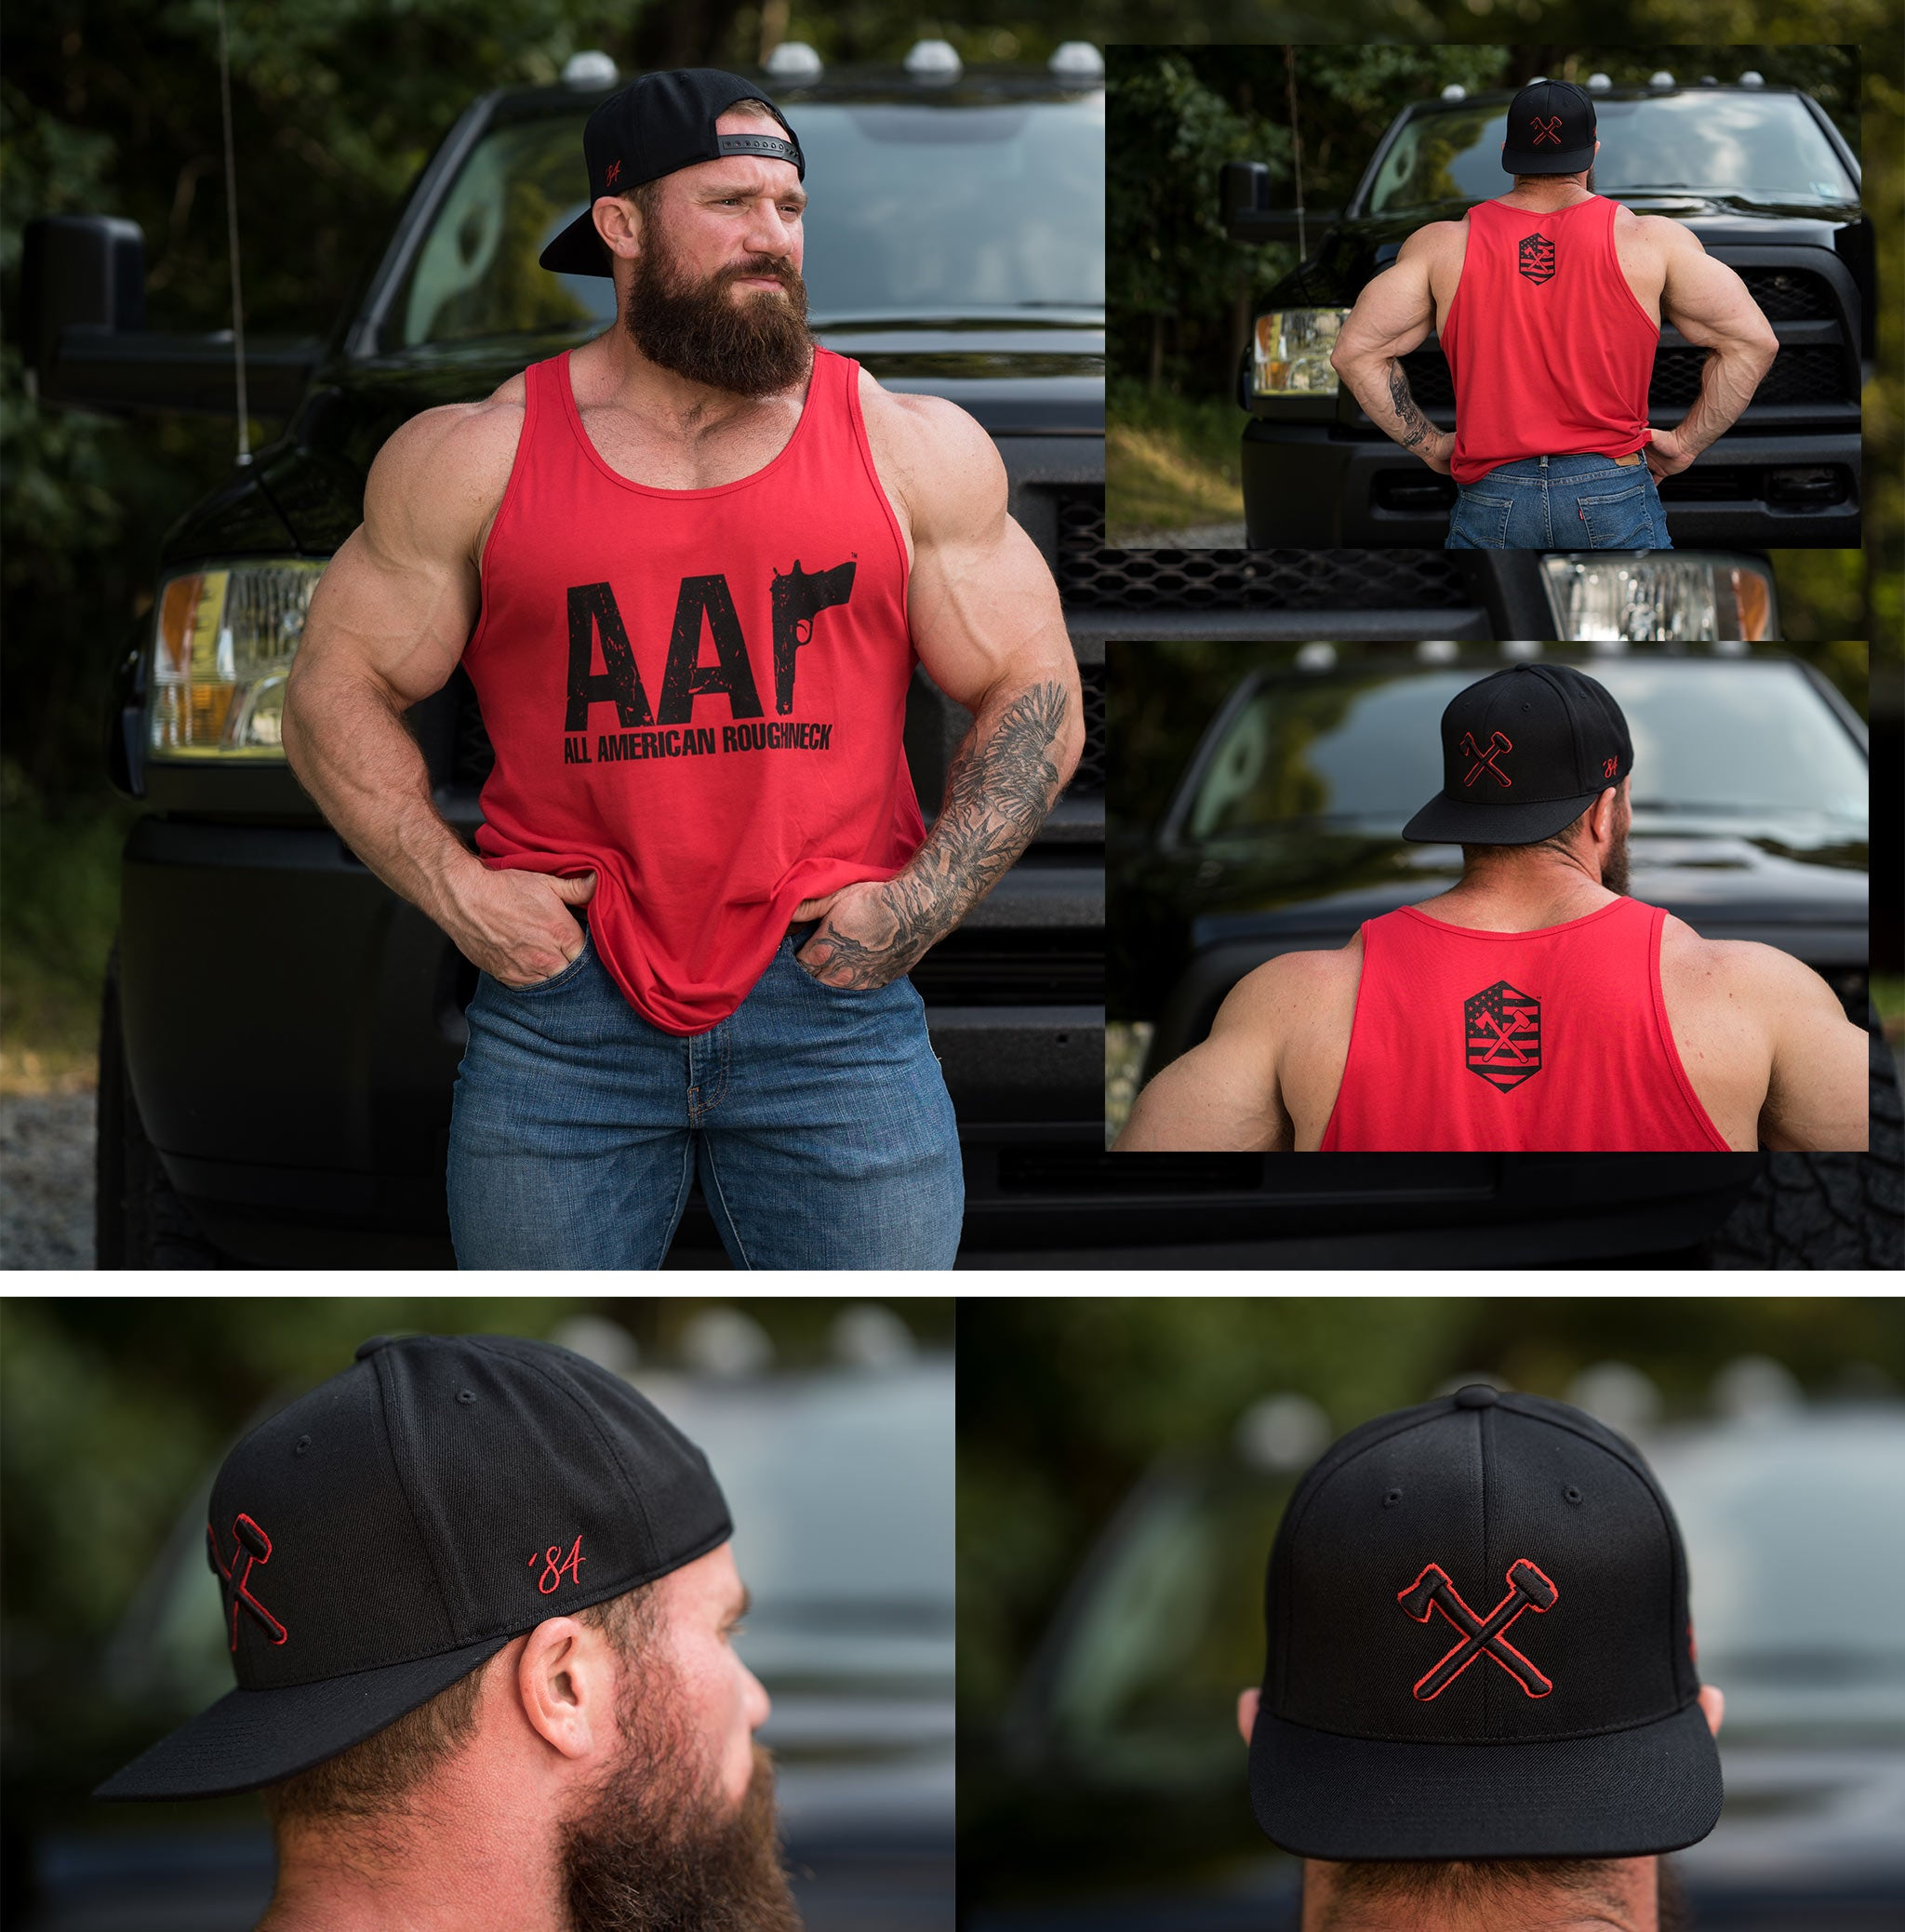 AAR Logo Tee and Snapback